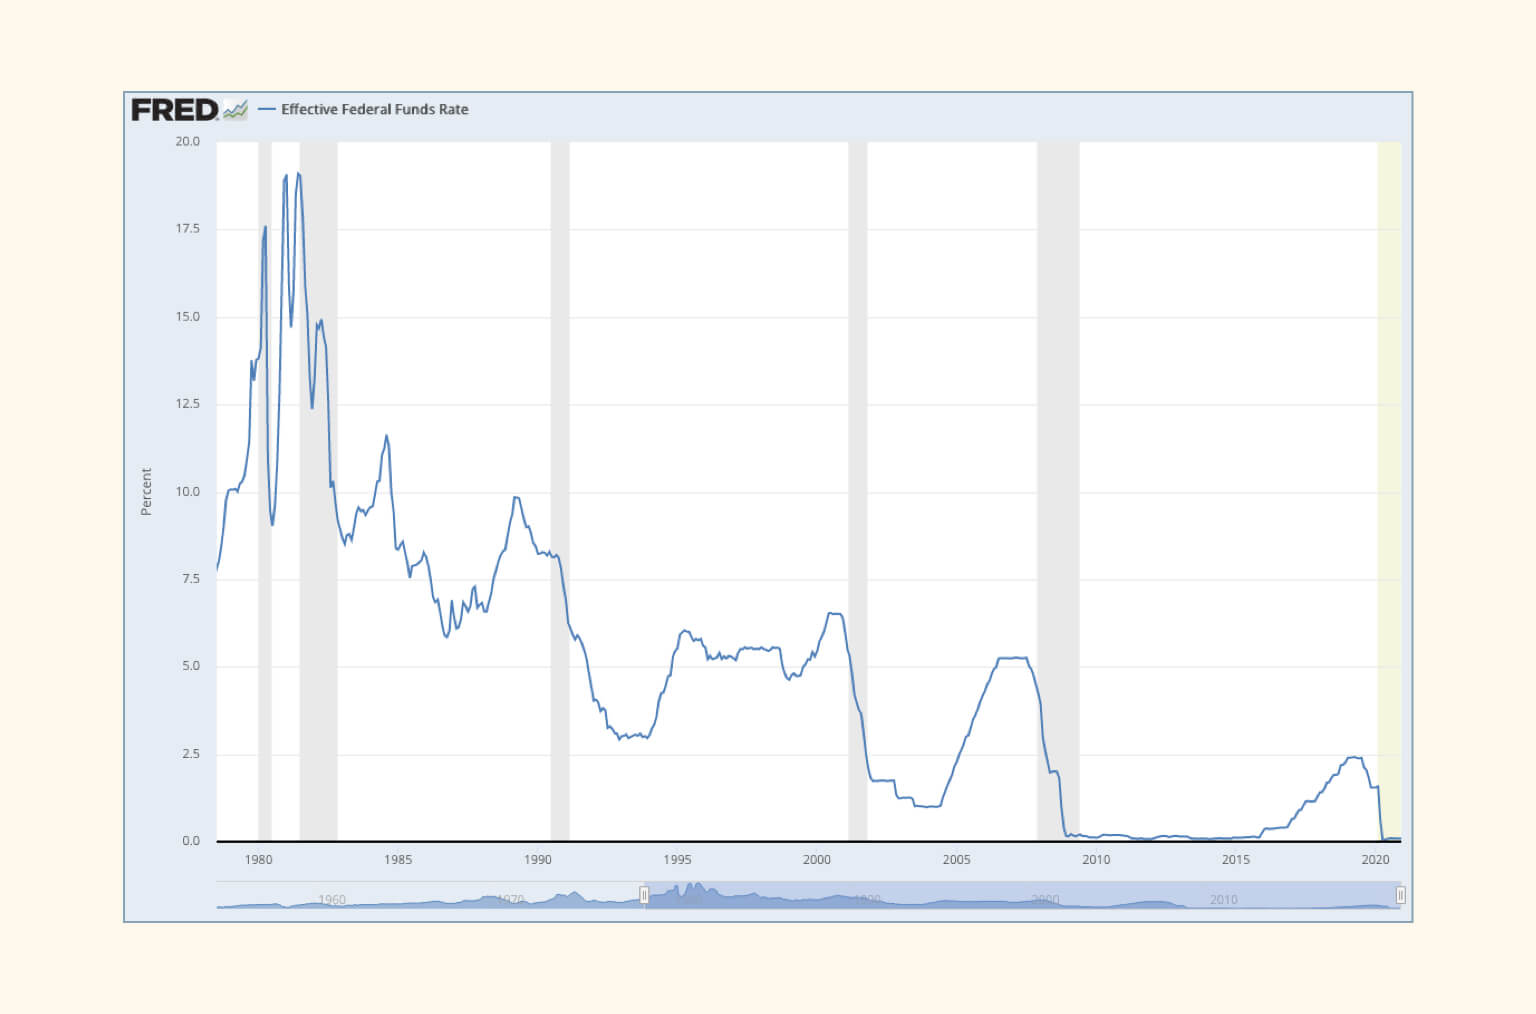 Chart of Federal Interest Rates over time shows a high level trend of declining interest rates from 1980s to 2020.